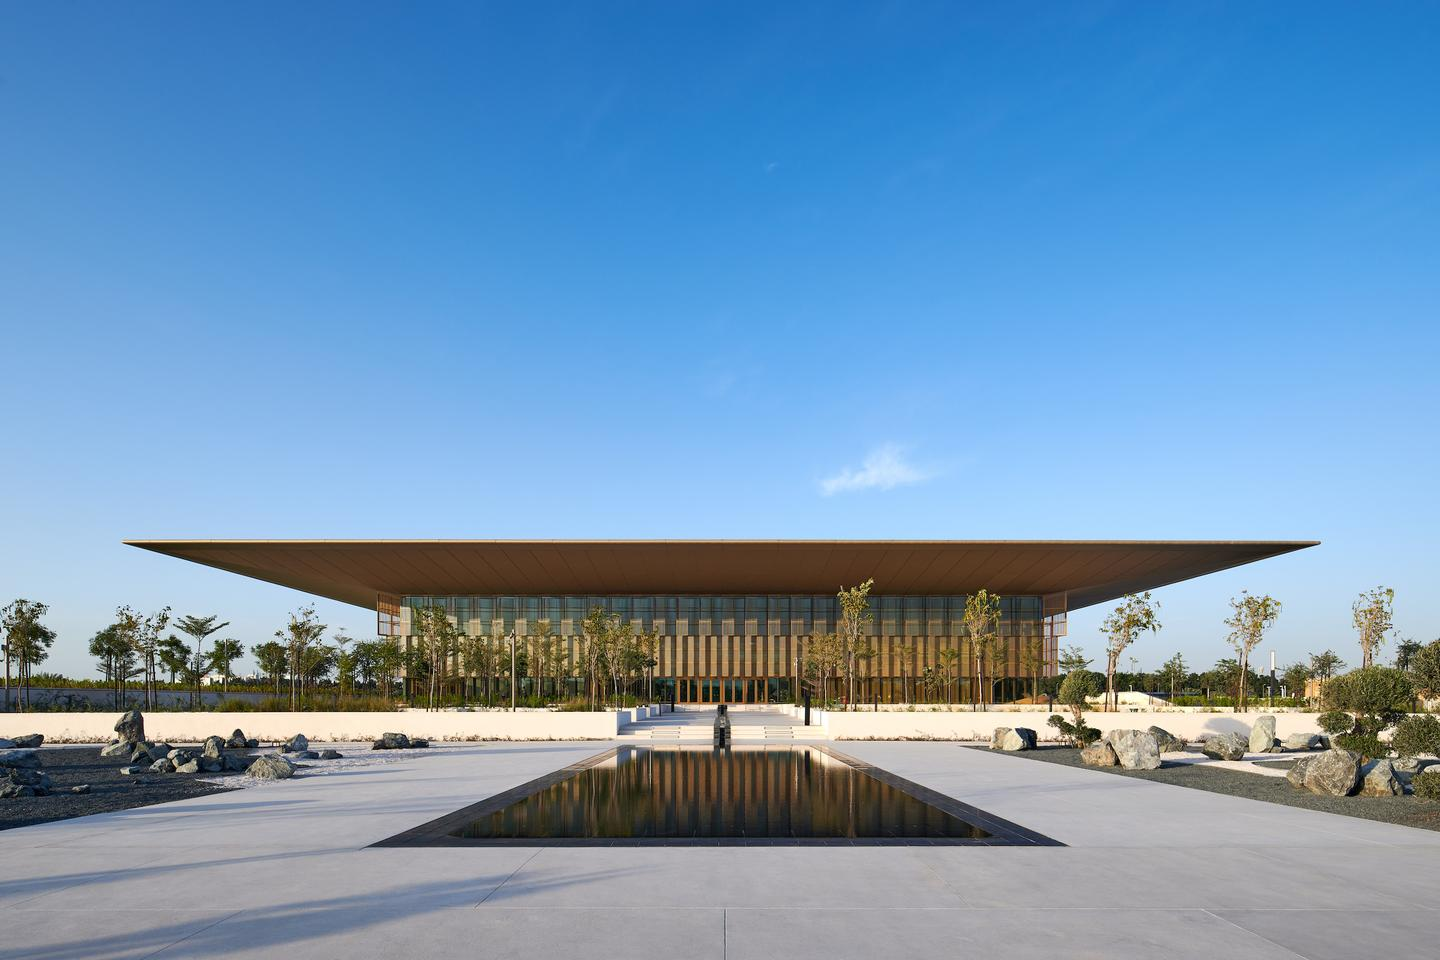 The House of Wisdom began construction in 2018 and was completed in late 2020 – it just recently opened its doors to visitors